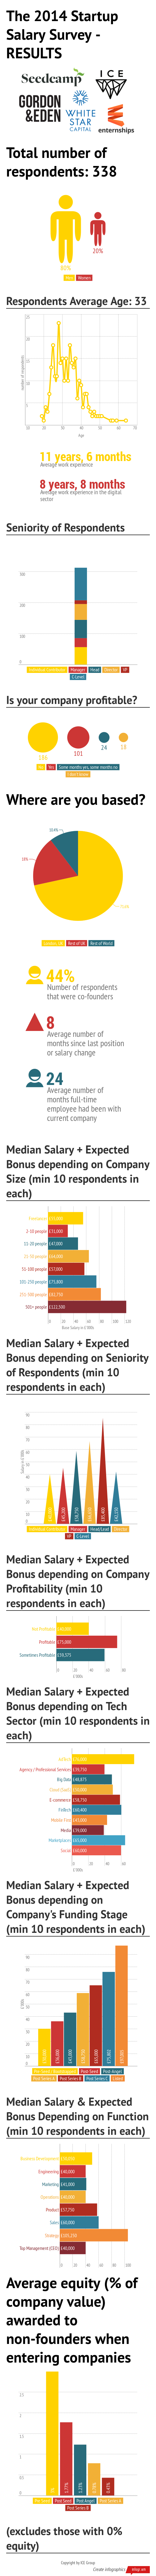 The_2014_Startup_Salary_Survey__RESULTS (1)